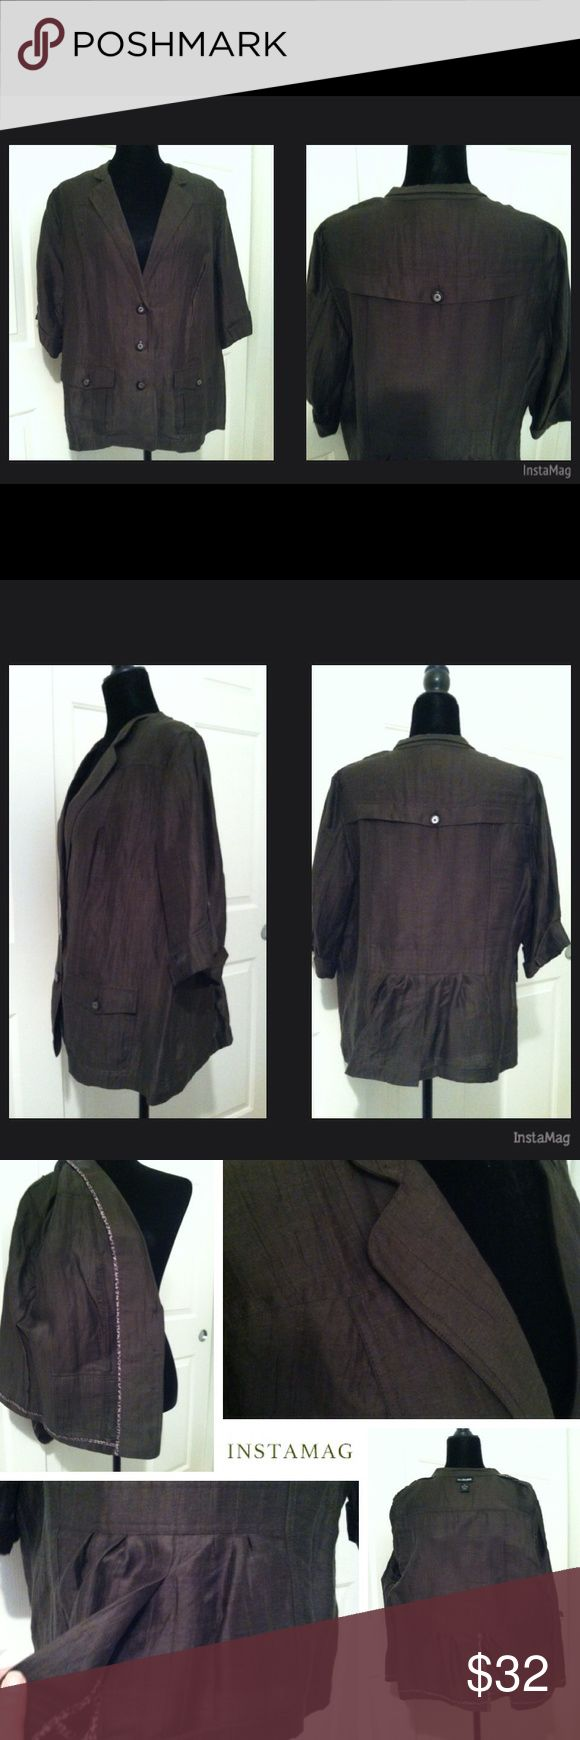 """Lane Bryant Military Green Safari Style Blazer Lane Bryant Military Green Safari Style Blazer     EUC – only worn a few times.  No flaws of any kind!  Has kind of a Safari style, silky feel and lightweight.  Dark military green, leopard trim on inside, but doesn't show outside. Button closure, 2 front flap pockets, no lining, 3/4 sleeve with tab cuffs, decorative back """"flap,"""" slight smock to back waist.  It's super cute; always received compliments.     Armpit to armpit – 24""""  Collar to hem…"""